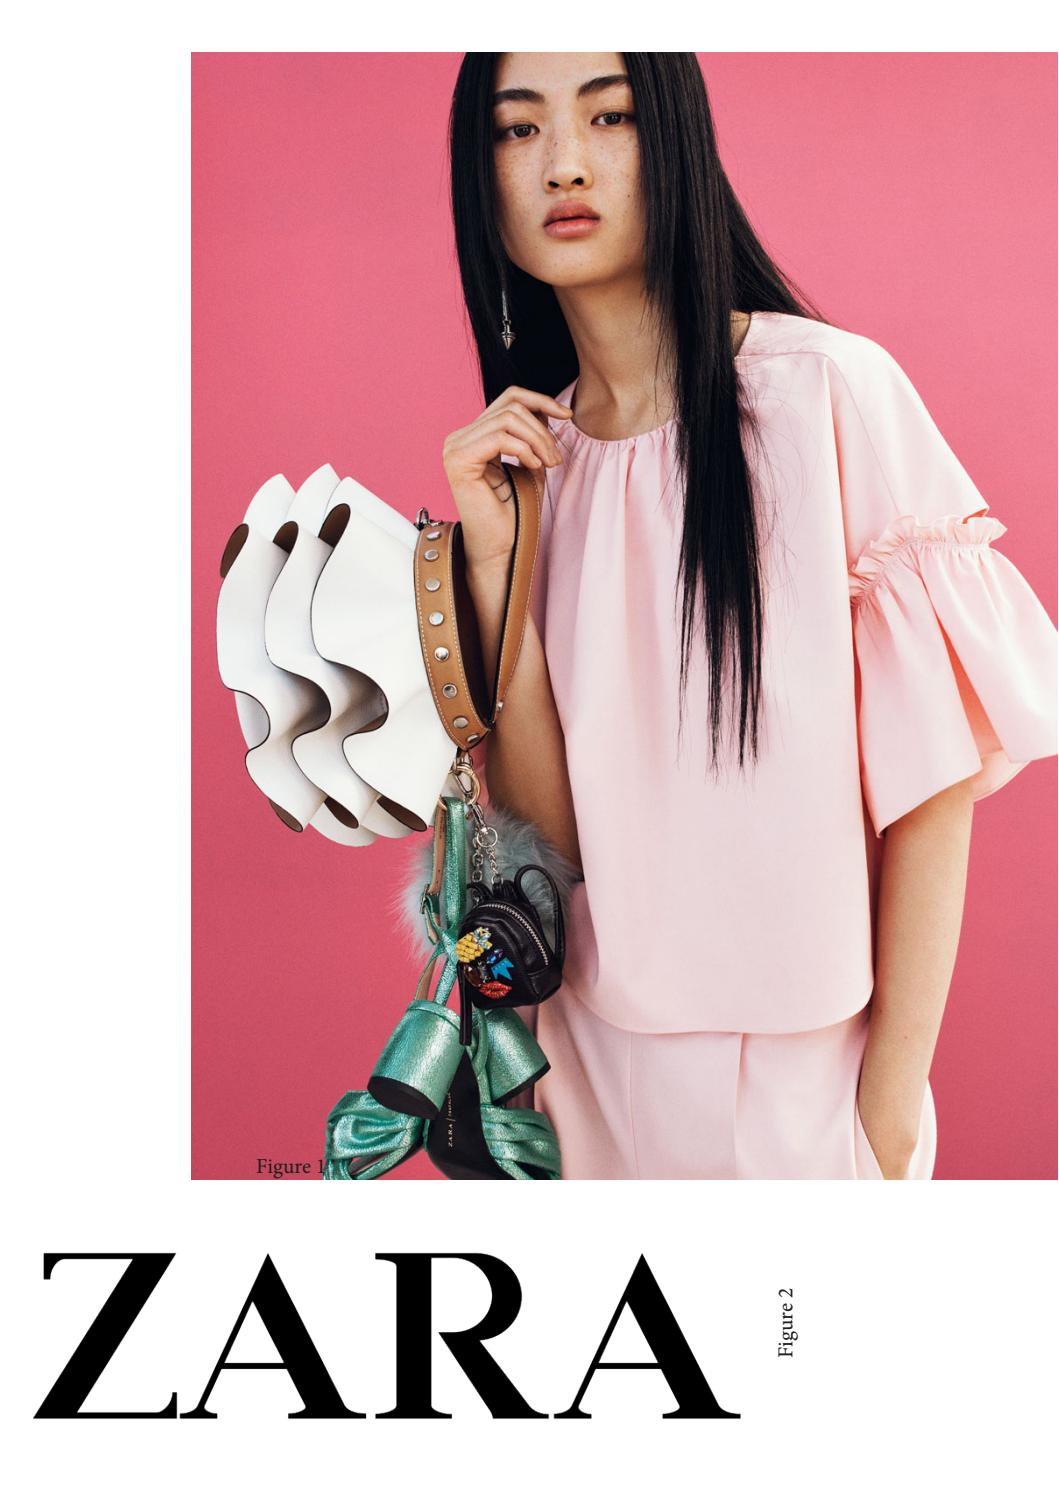 Zara Brand Report by FashionAtChesterUni - Issuu